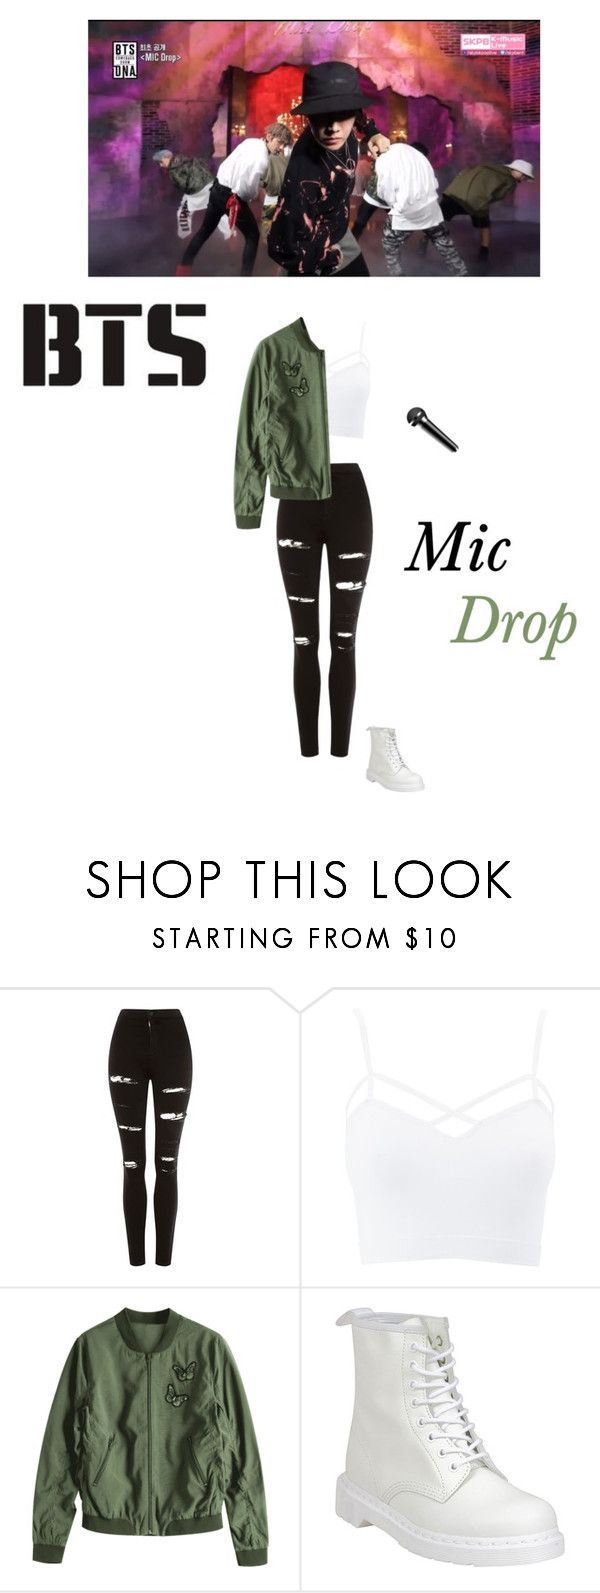 Bts- Mic Drop Live Performance   Size Clothing Charlotte Russe And BTS